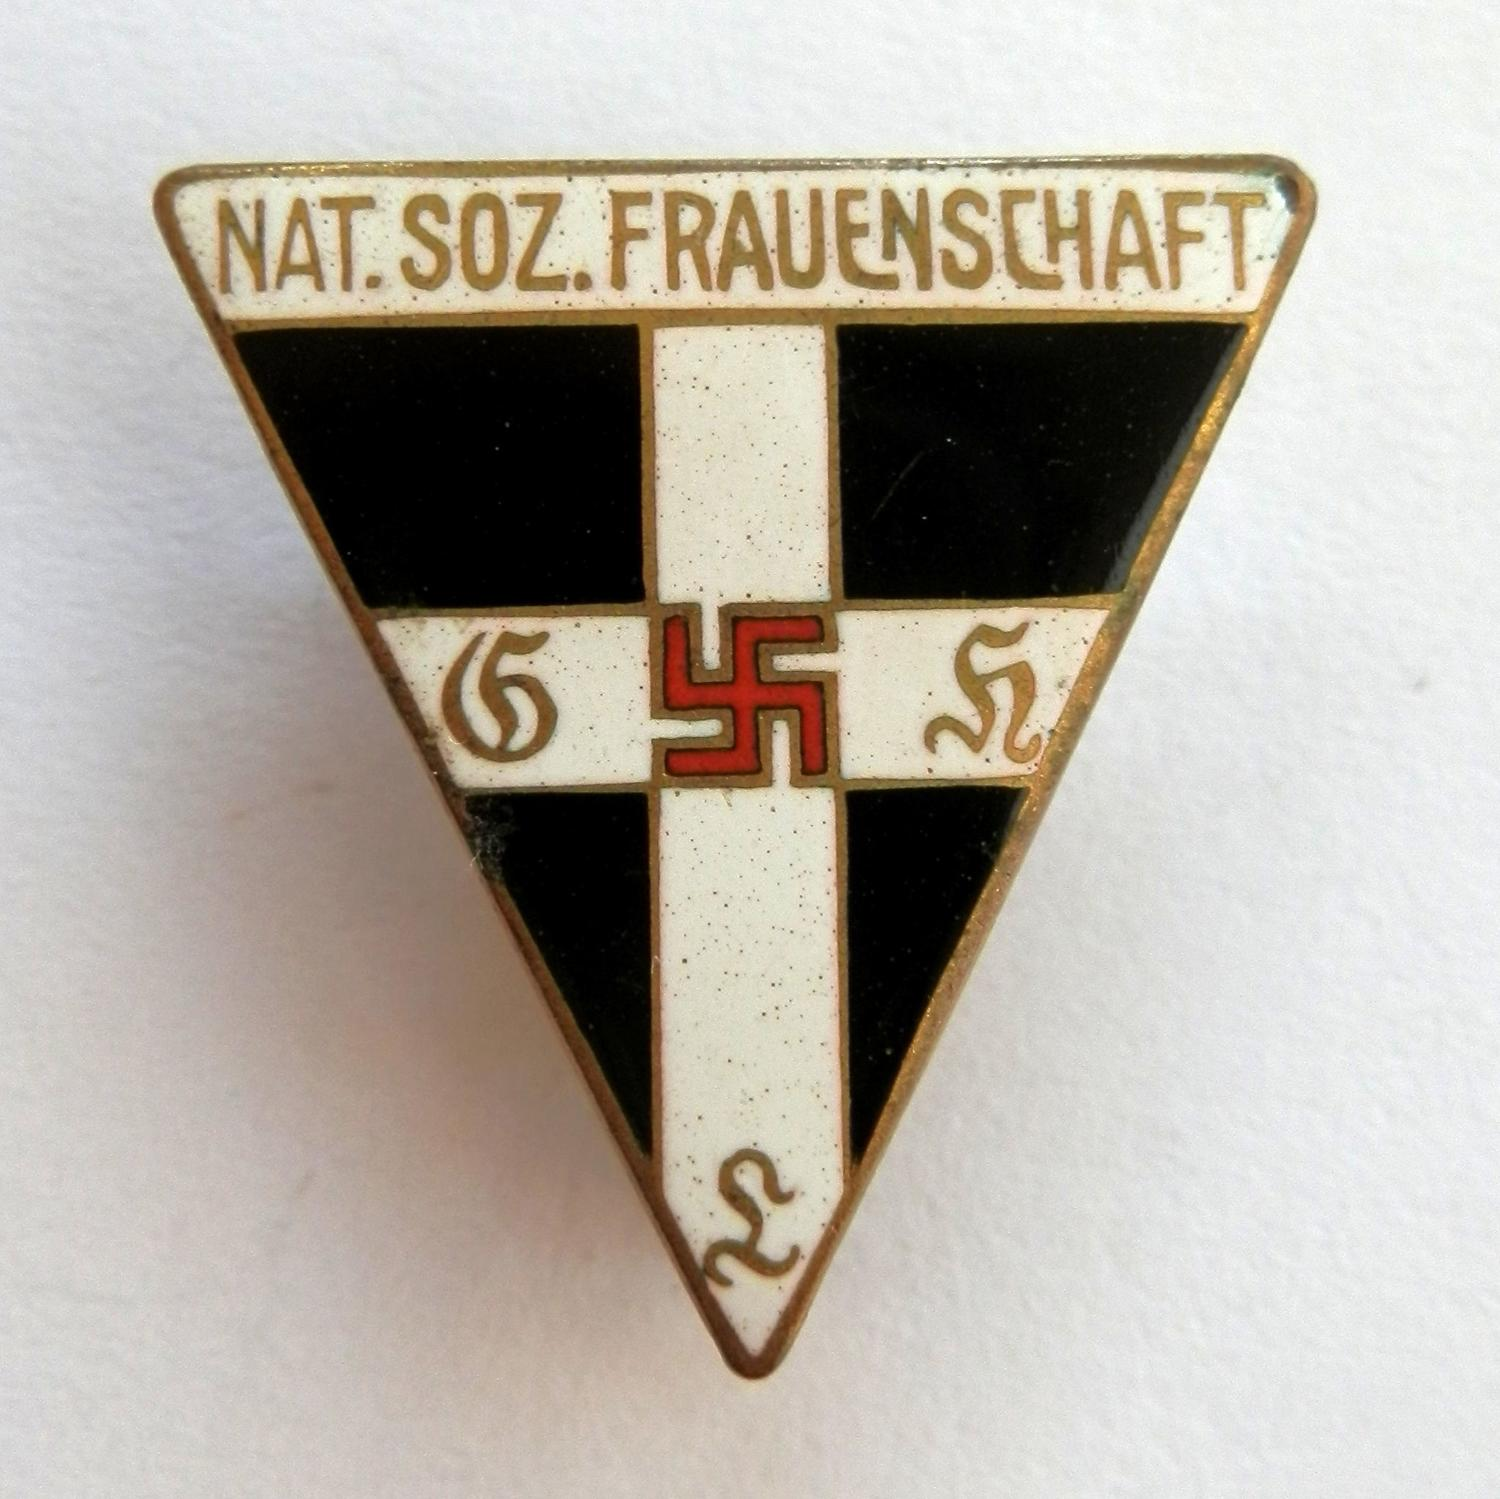 Nat. Soz. Frauenschaft Senior Women's Leaders Pin Badge.